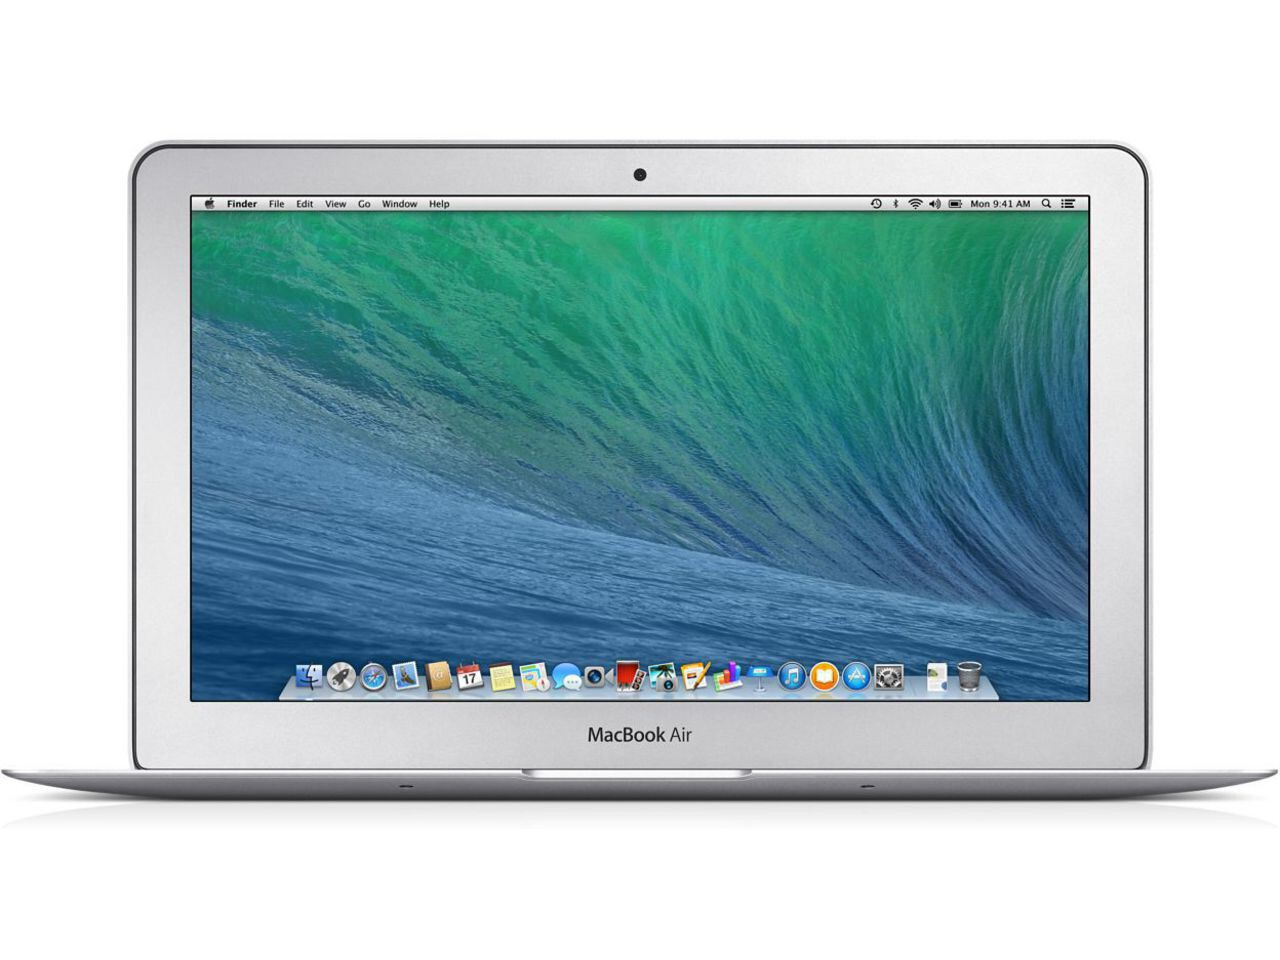 macbook air 11 inch 2013 silver